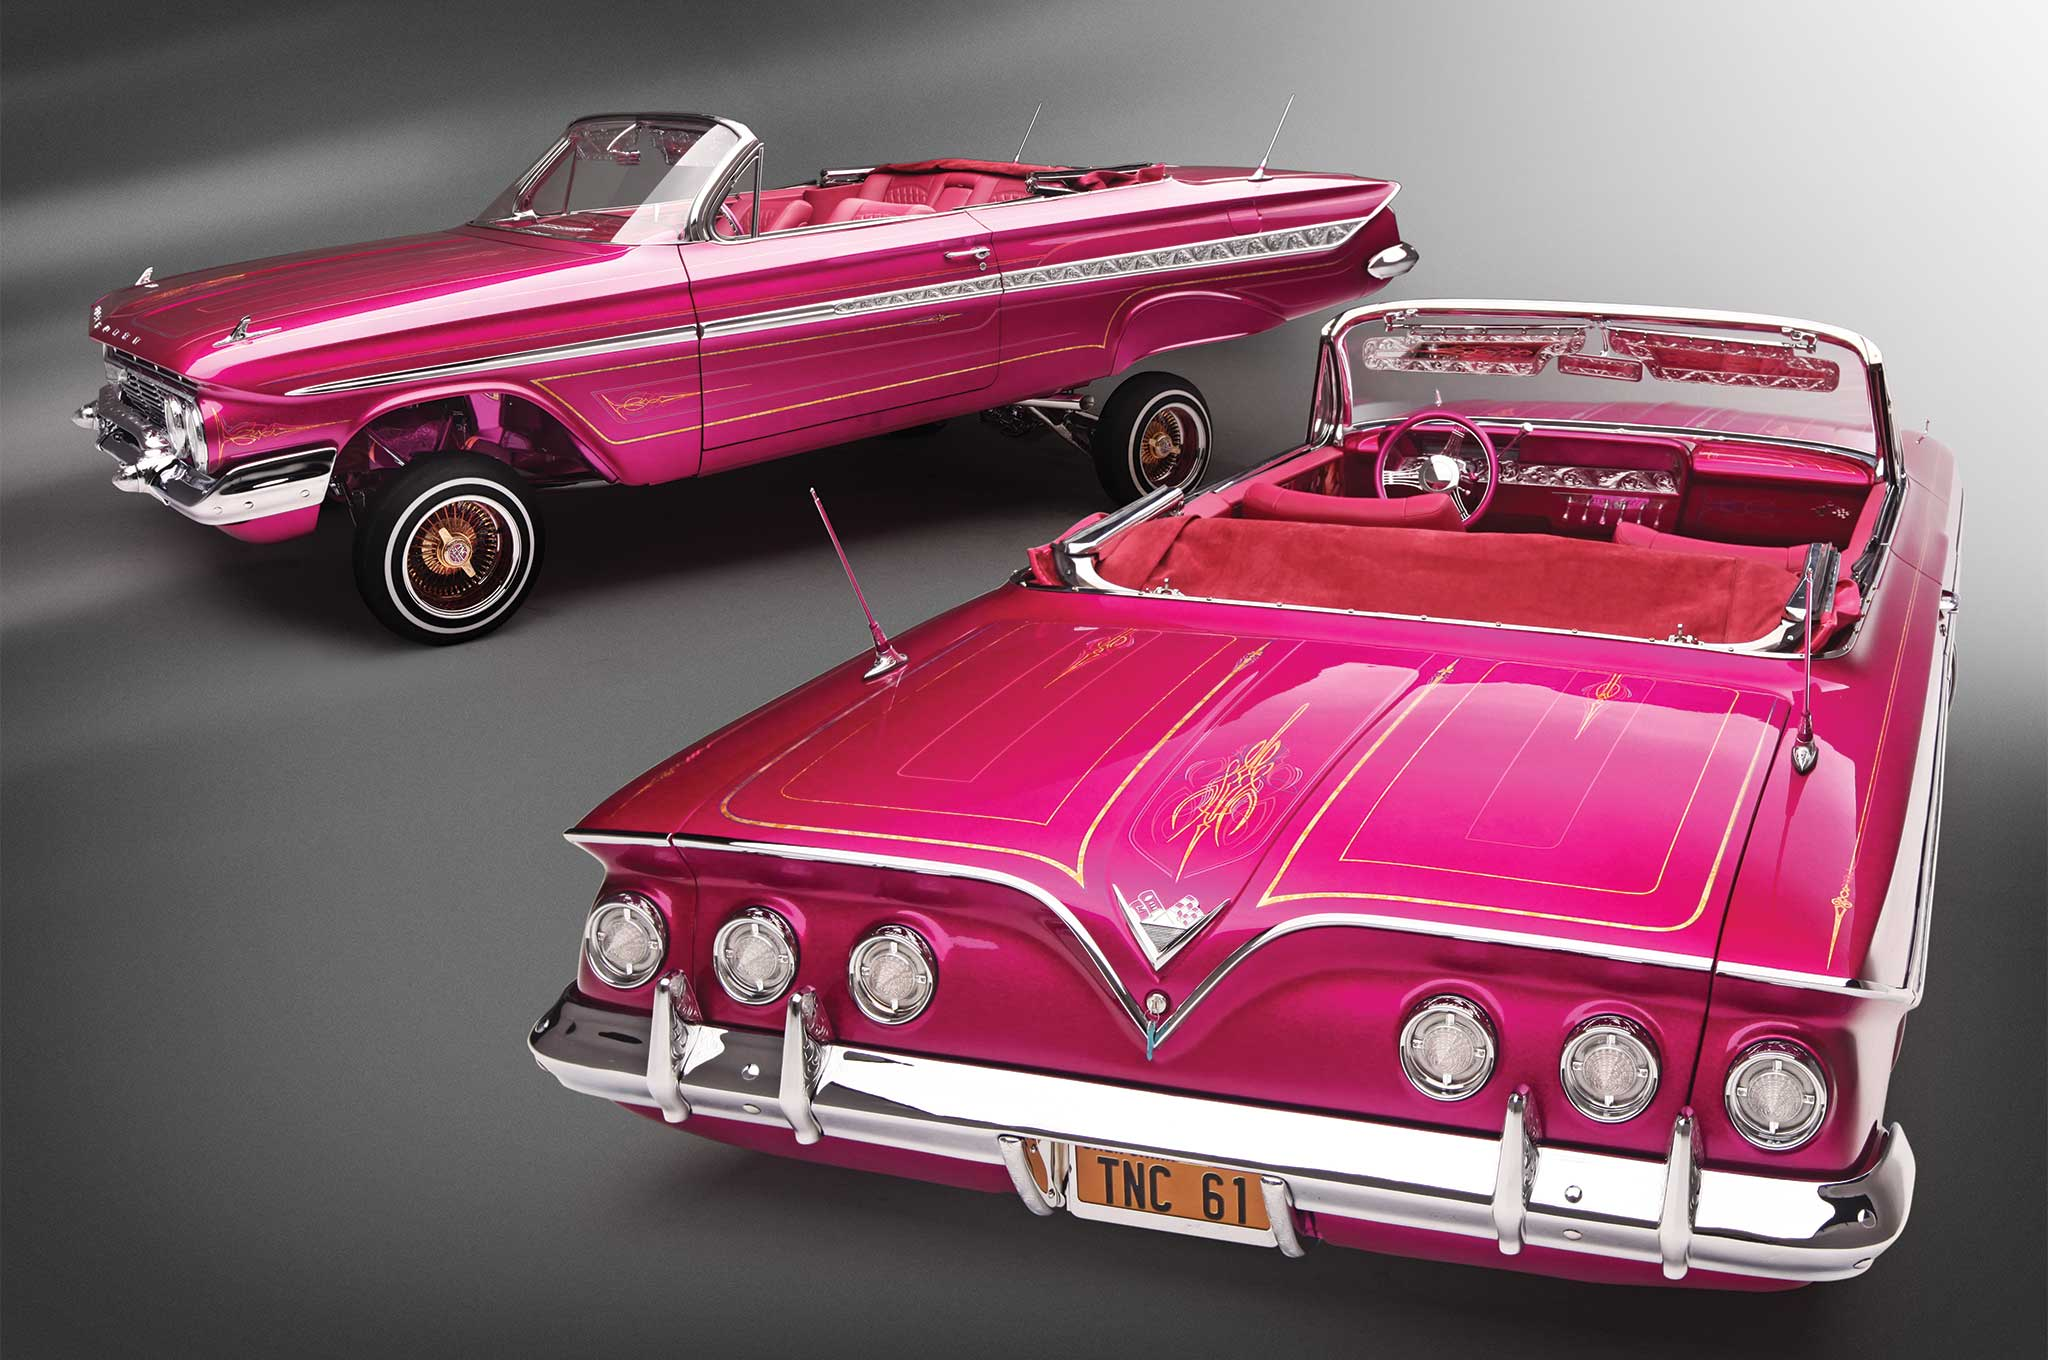 1961 Chevrolet Impala Convertible The Sweet Life Lowrider